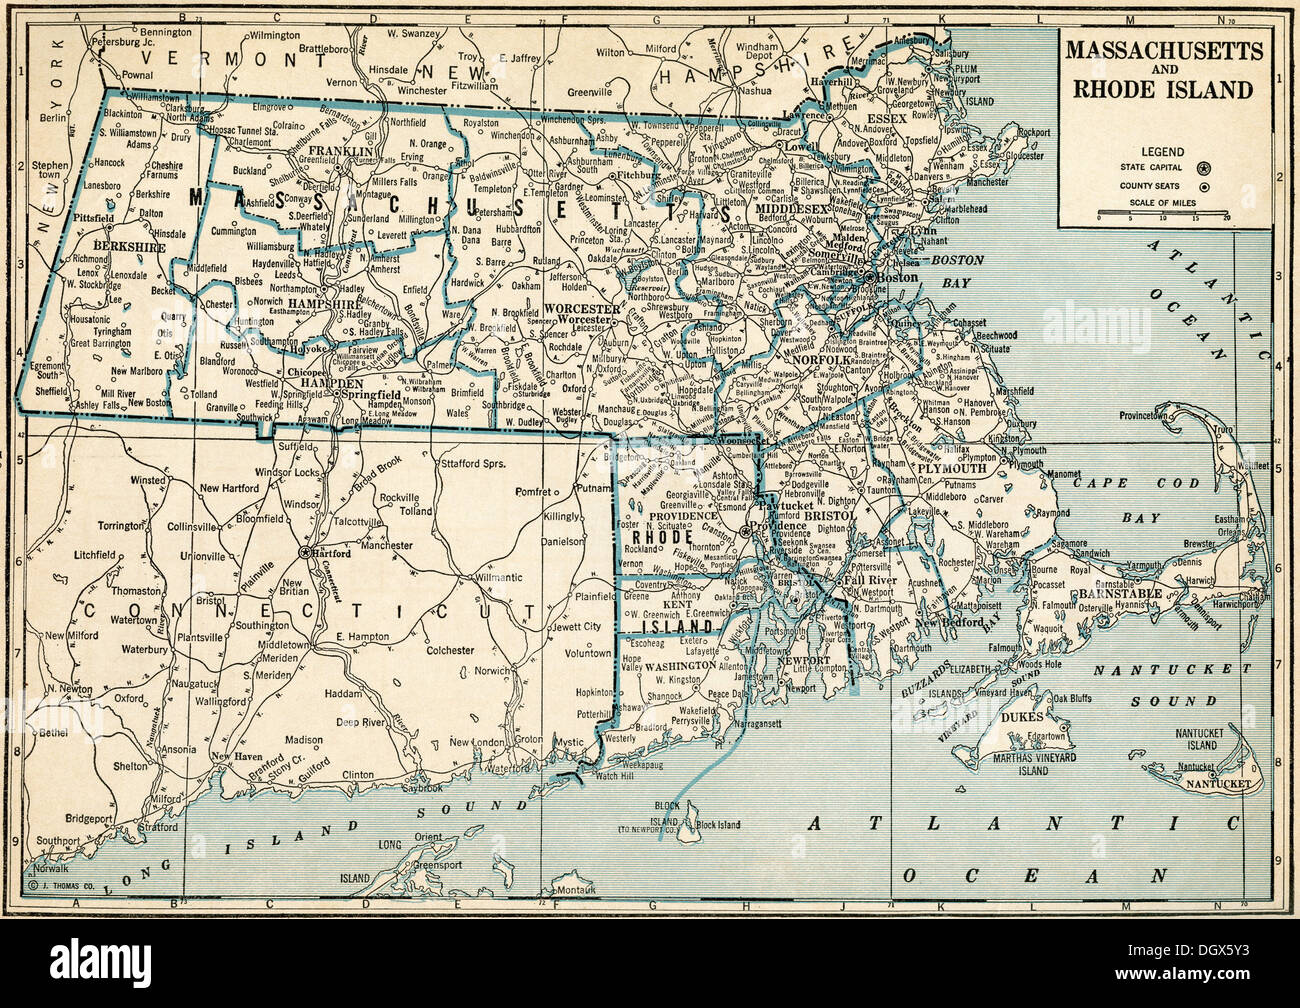 Map Of Massachusetts And Rhode Island Old map of Massachusetts and Rhode Island states, 1930's Stock